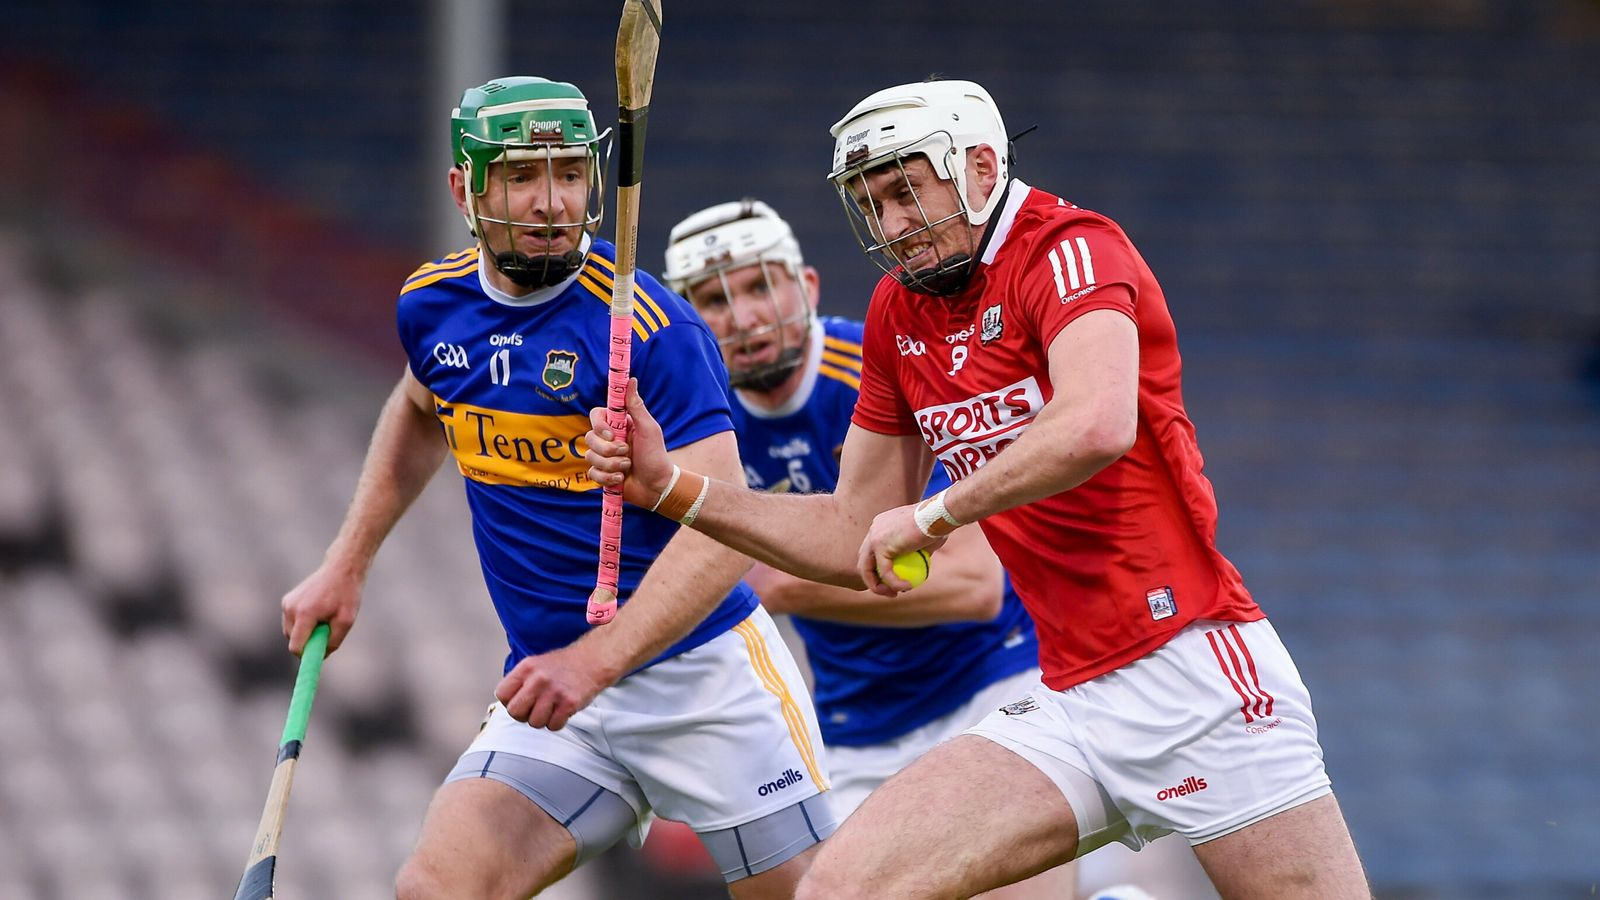 Tipperary 2-16 Cork 0-22: Munster rivals share spoils in Thurles nail-biter